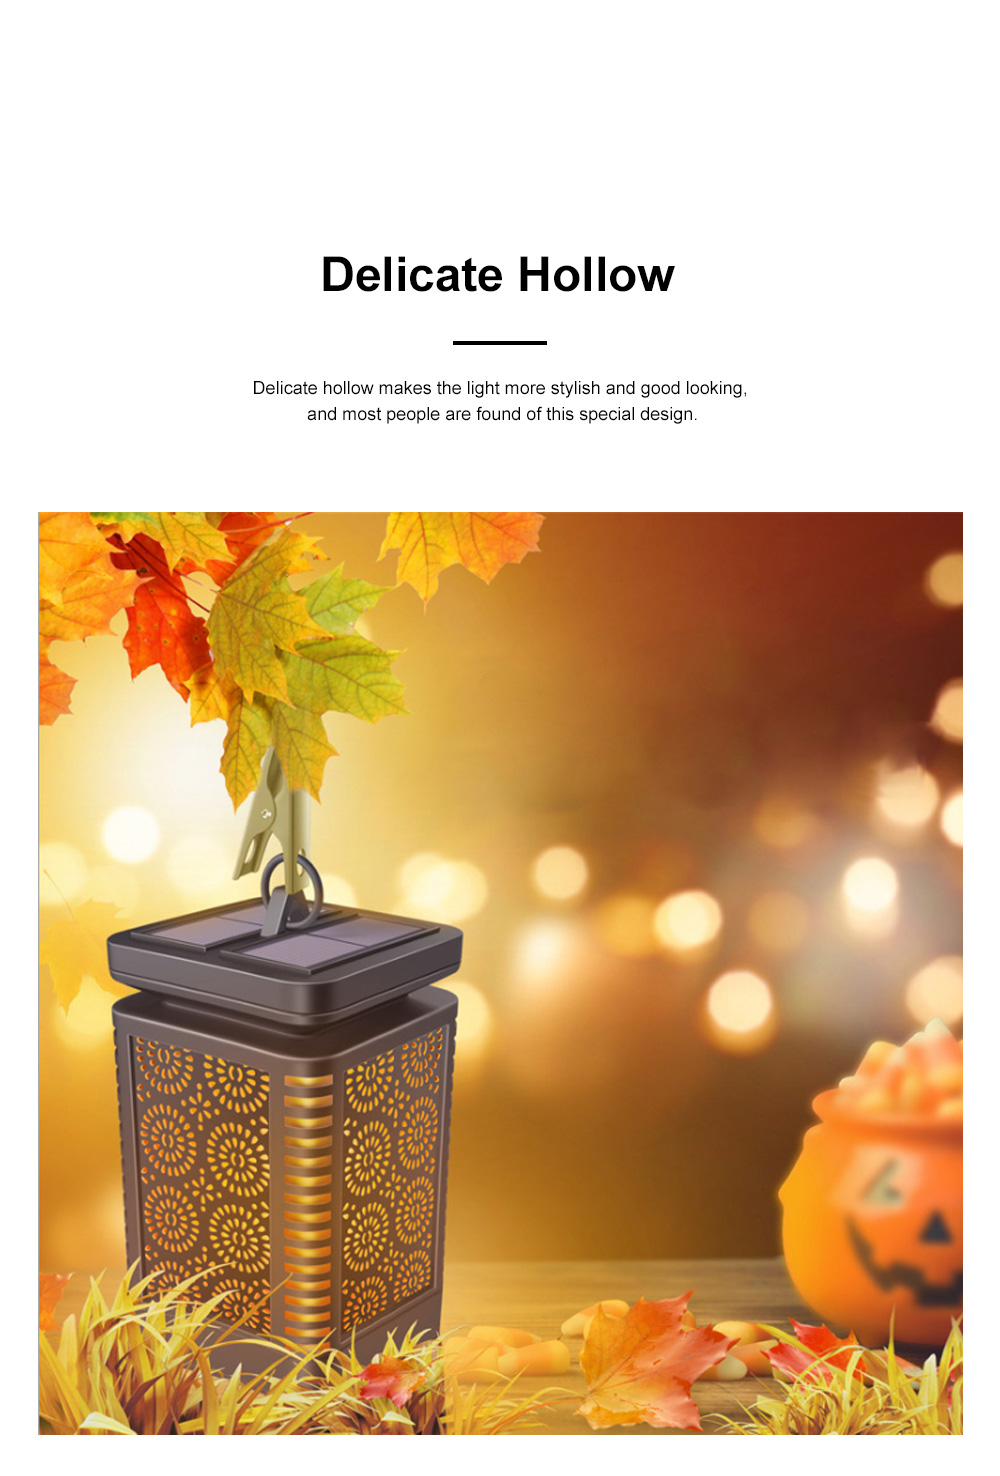 Delicate Hollow Solar Power Simulated Flame Light Outdoors Decoration Camping Waterproof Light with Clip 5